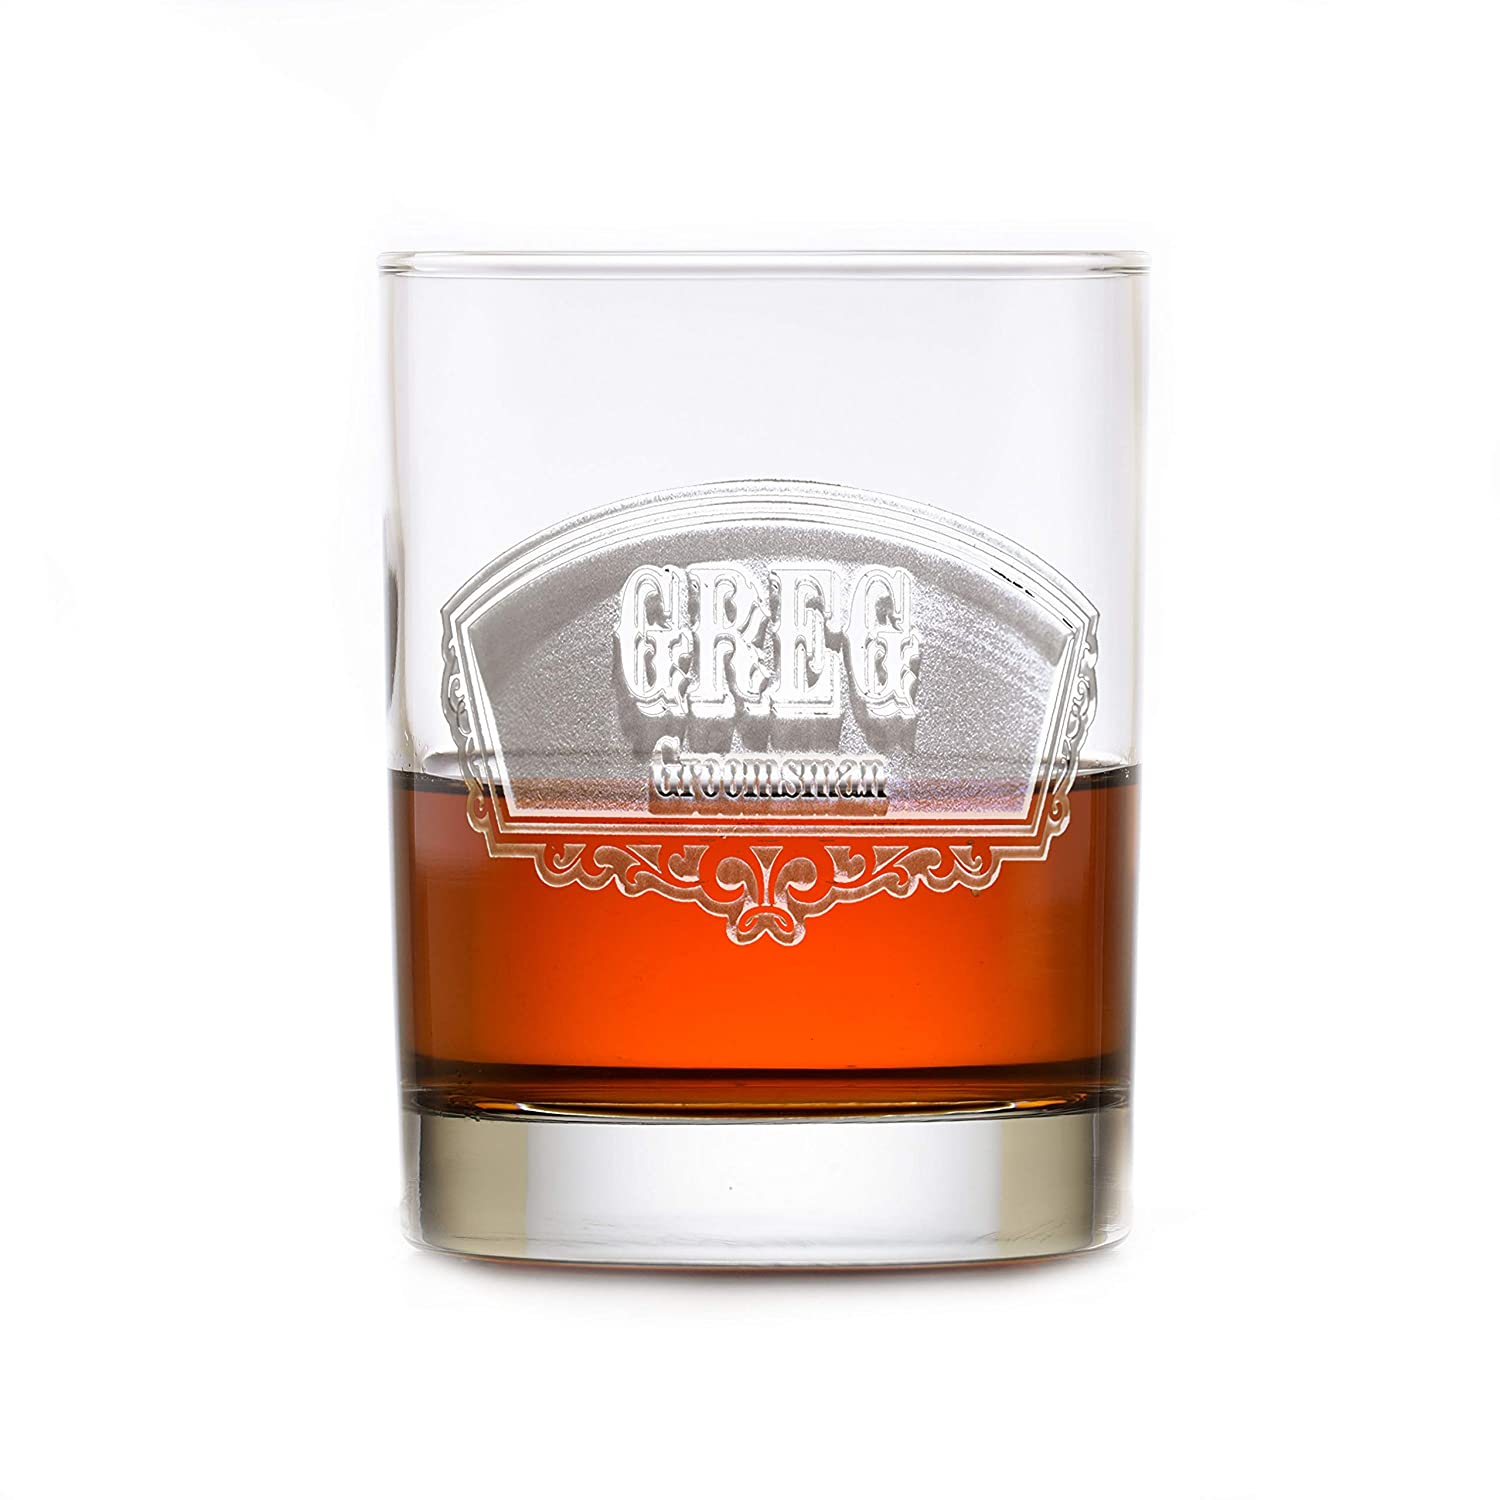 Las Vegas Mall Groomsmen Personalized Double Old Scot Glass Fashioned Trust Whiskey